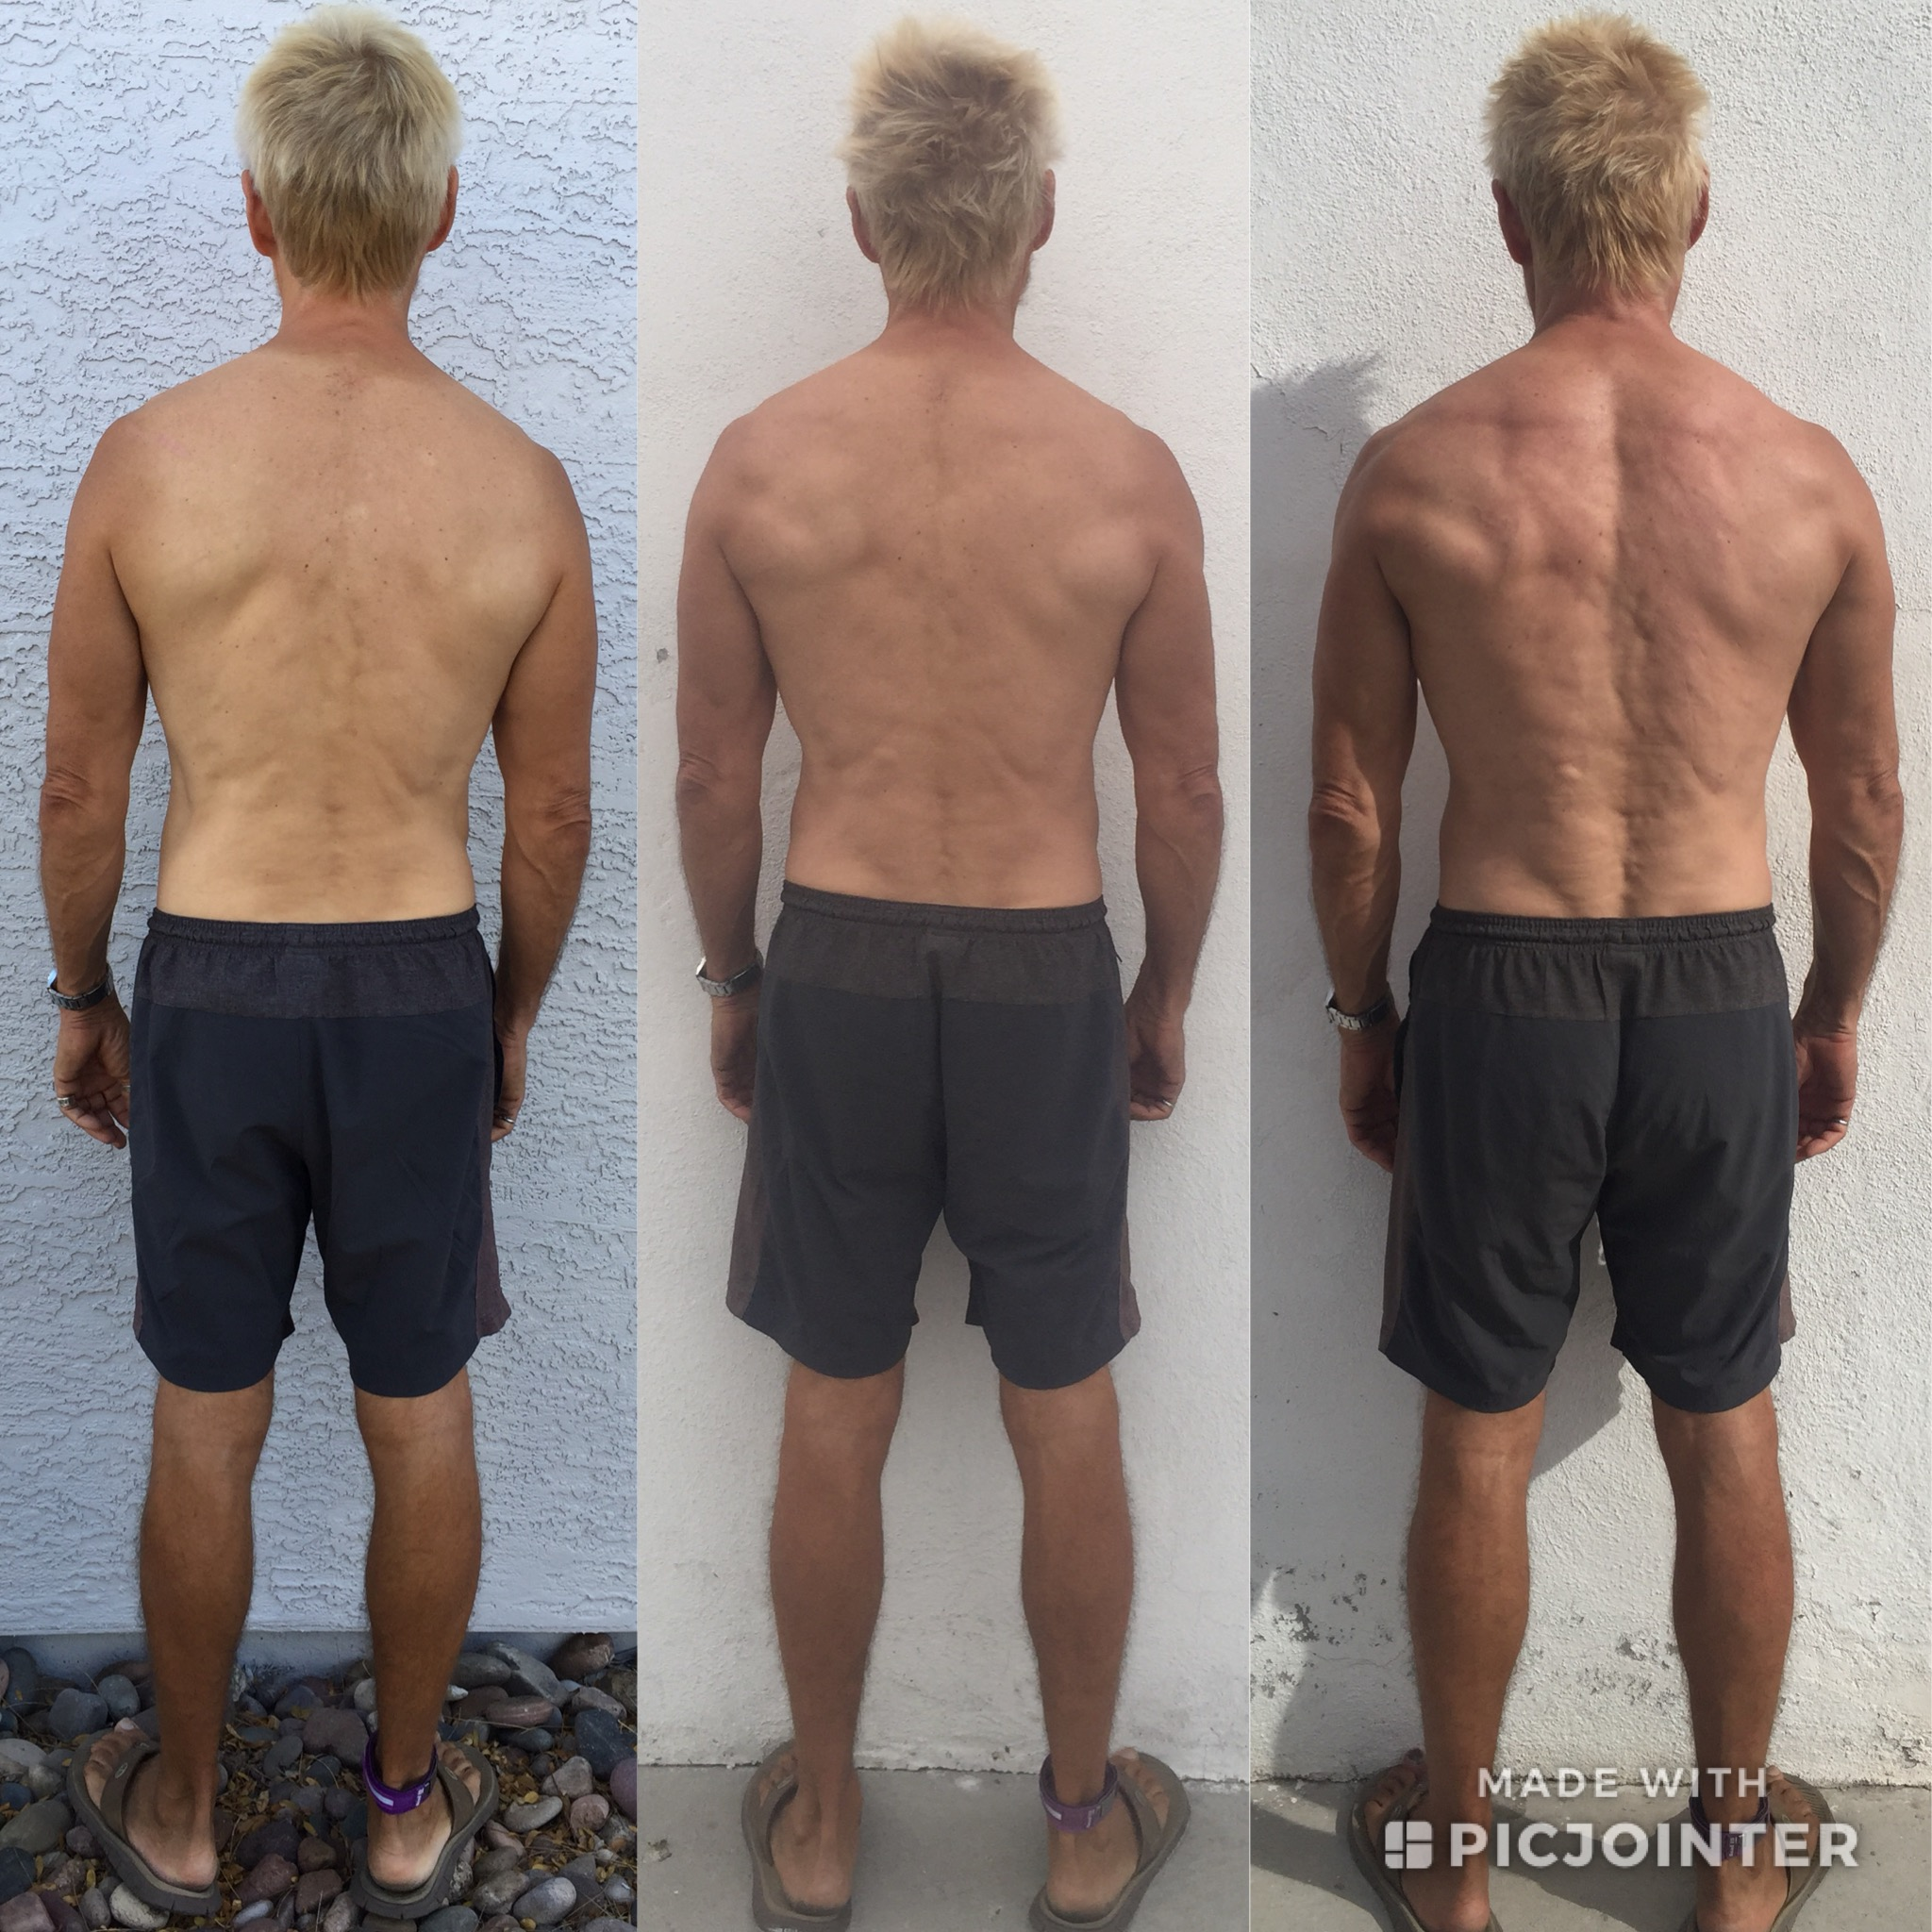 67.6 Kg To Lbs Minimalist new trt alternative? a self-experiment - the healthy executive